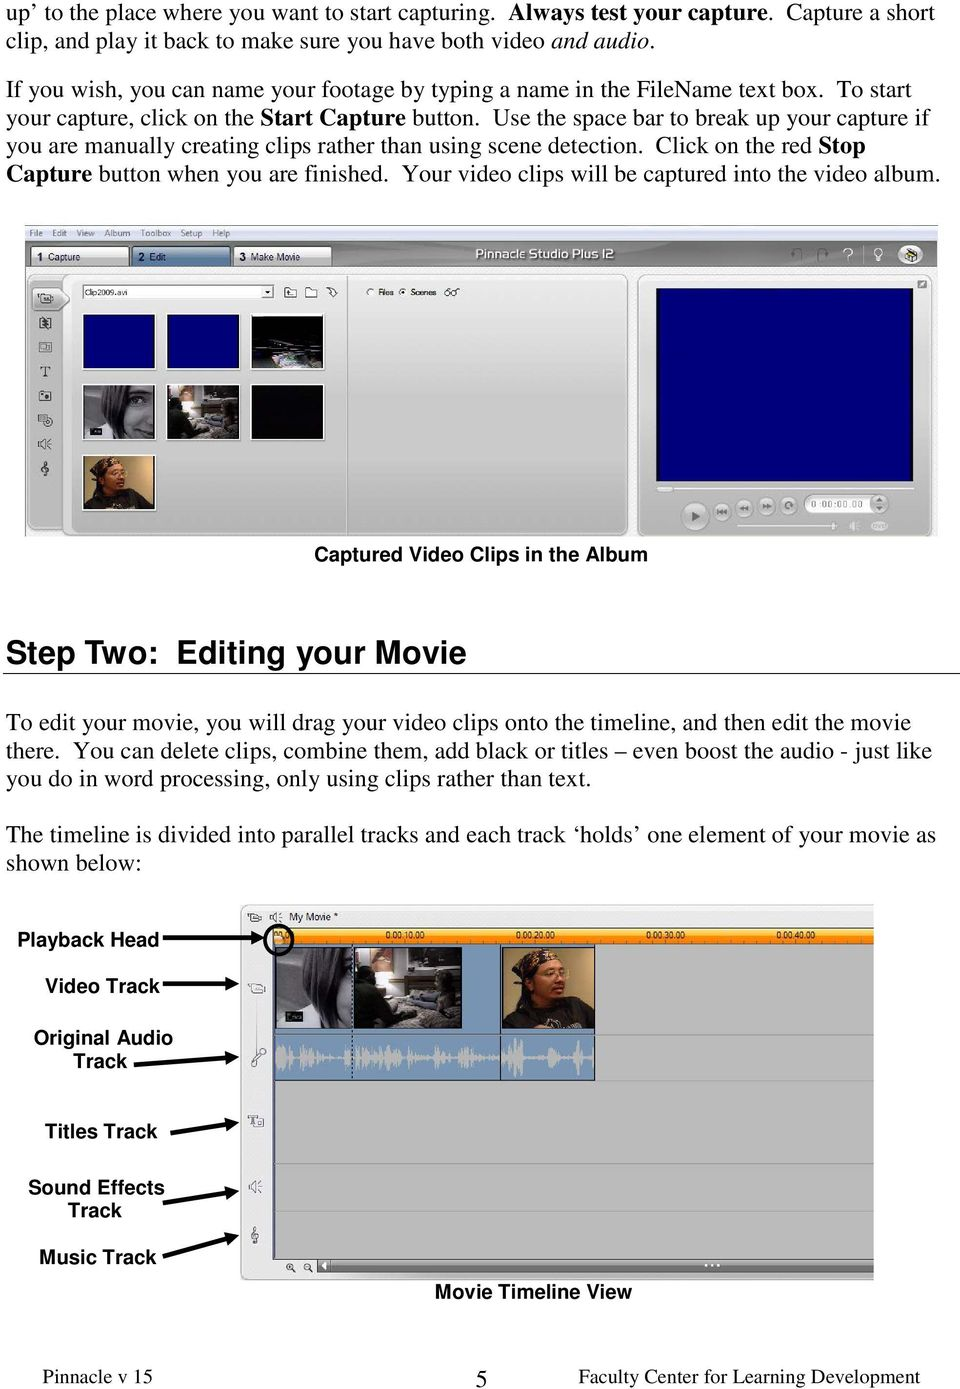 Use the space bar to break up your capture if you are manually creating clips rather than using scene detection. Click on the red Stop Capture button when you are finished.